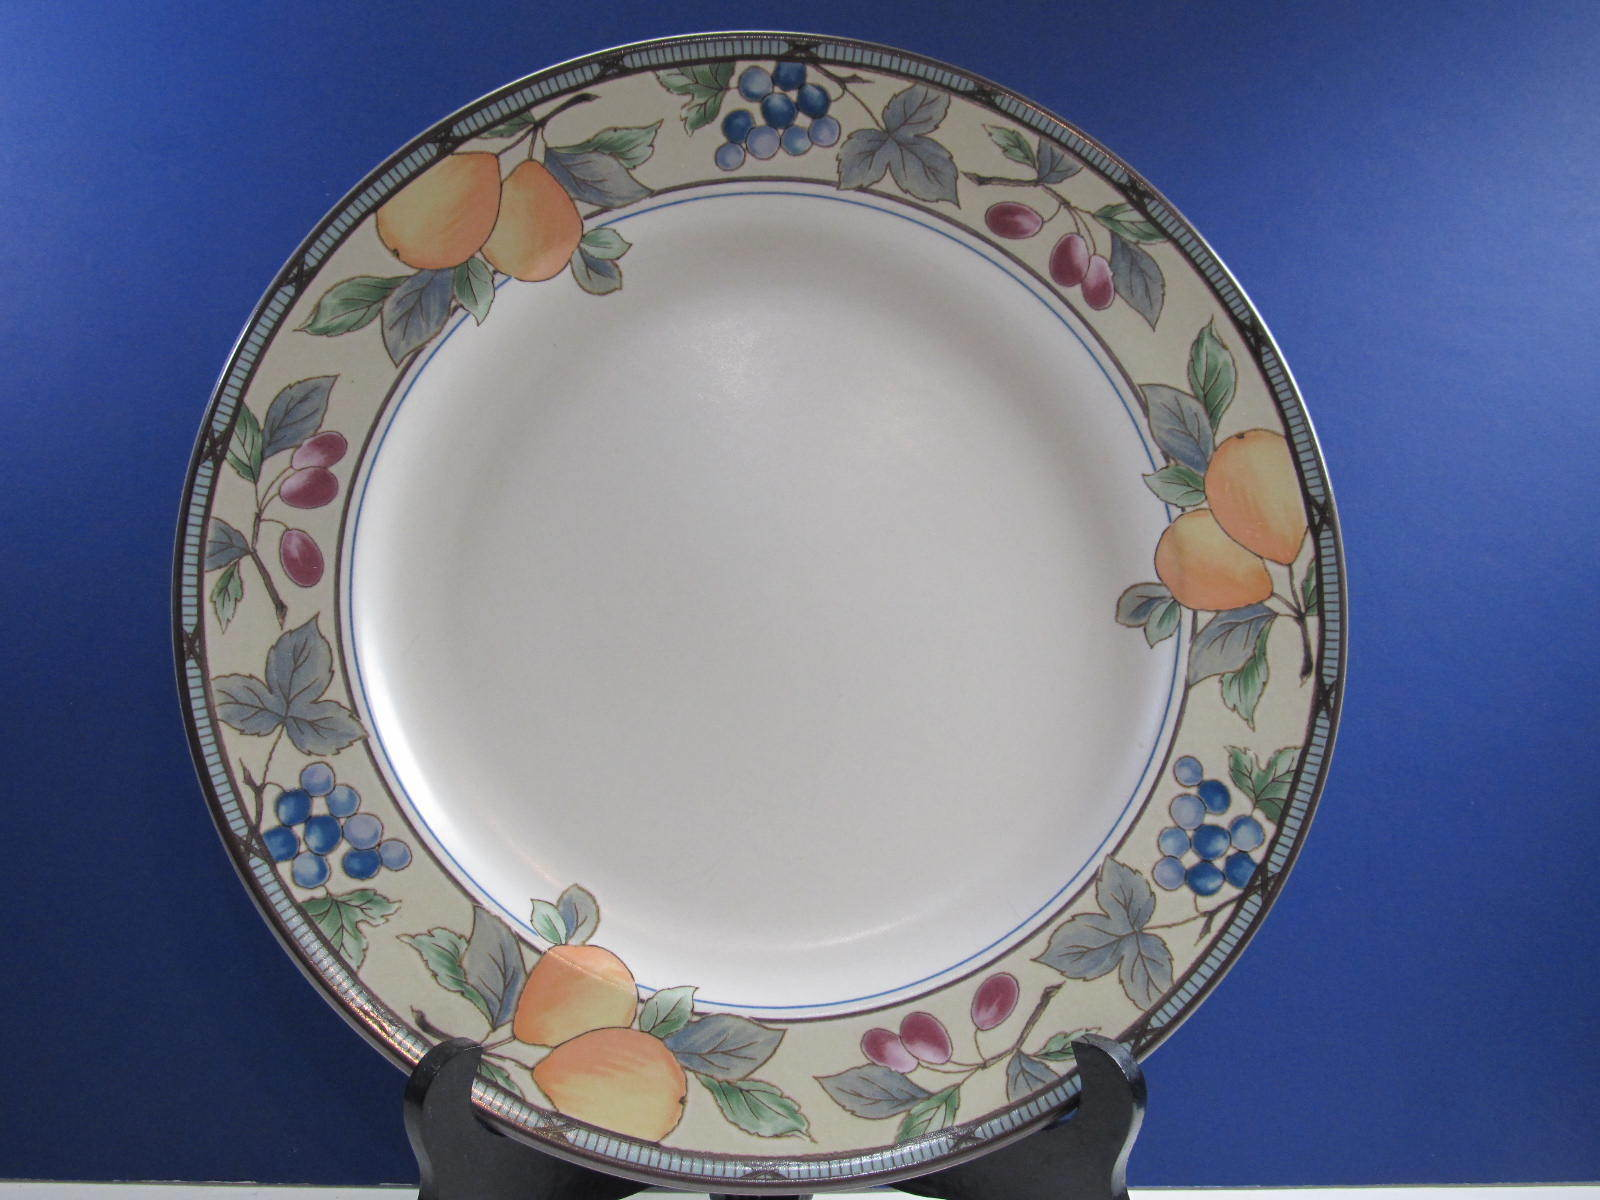 Mikasa Garden Harvest Dinner Plate/s 11.5-Inch multiples available & Mikasa Garden Harvest Dinner Plate/s and 50 similar items